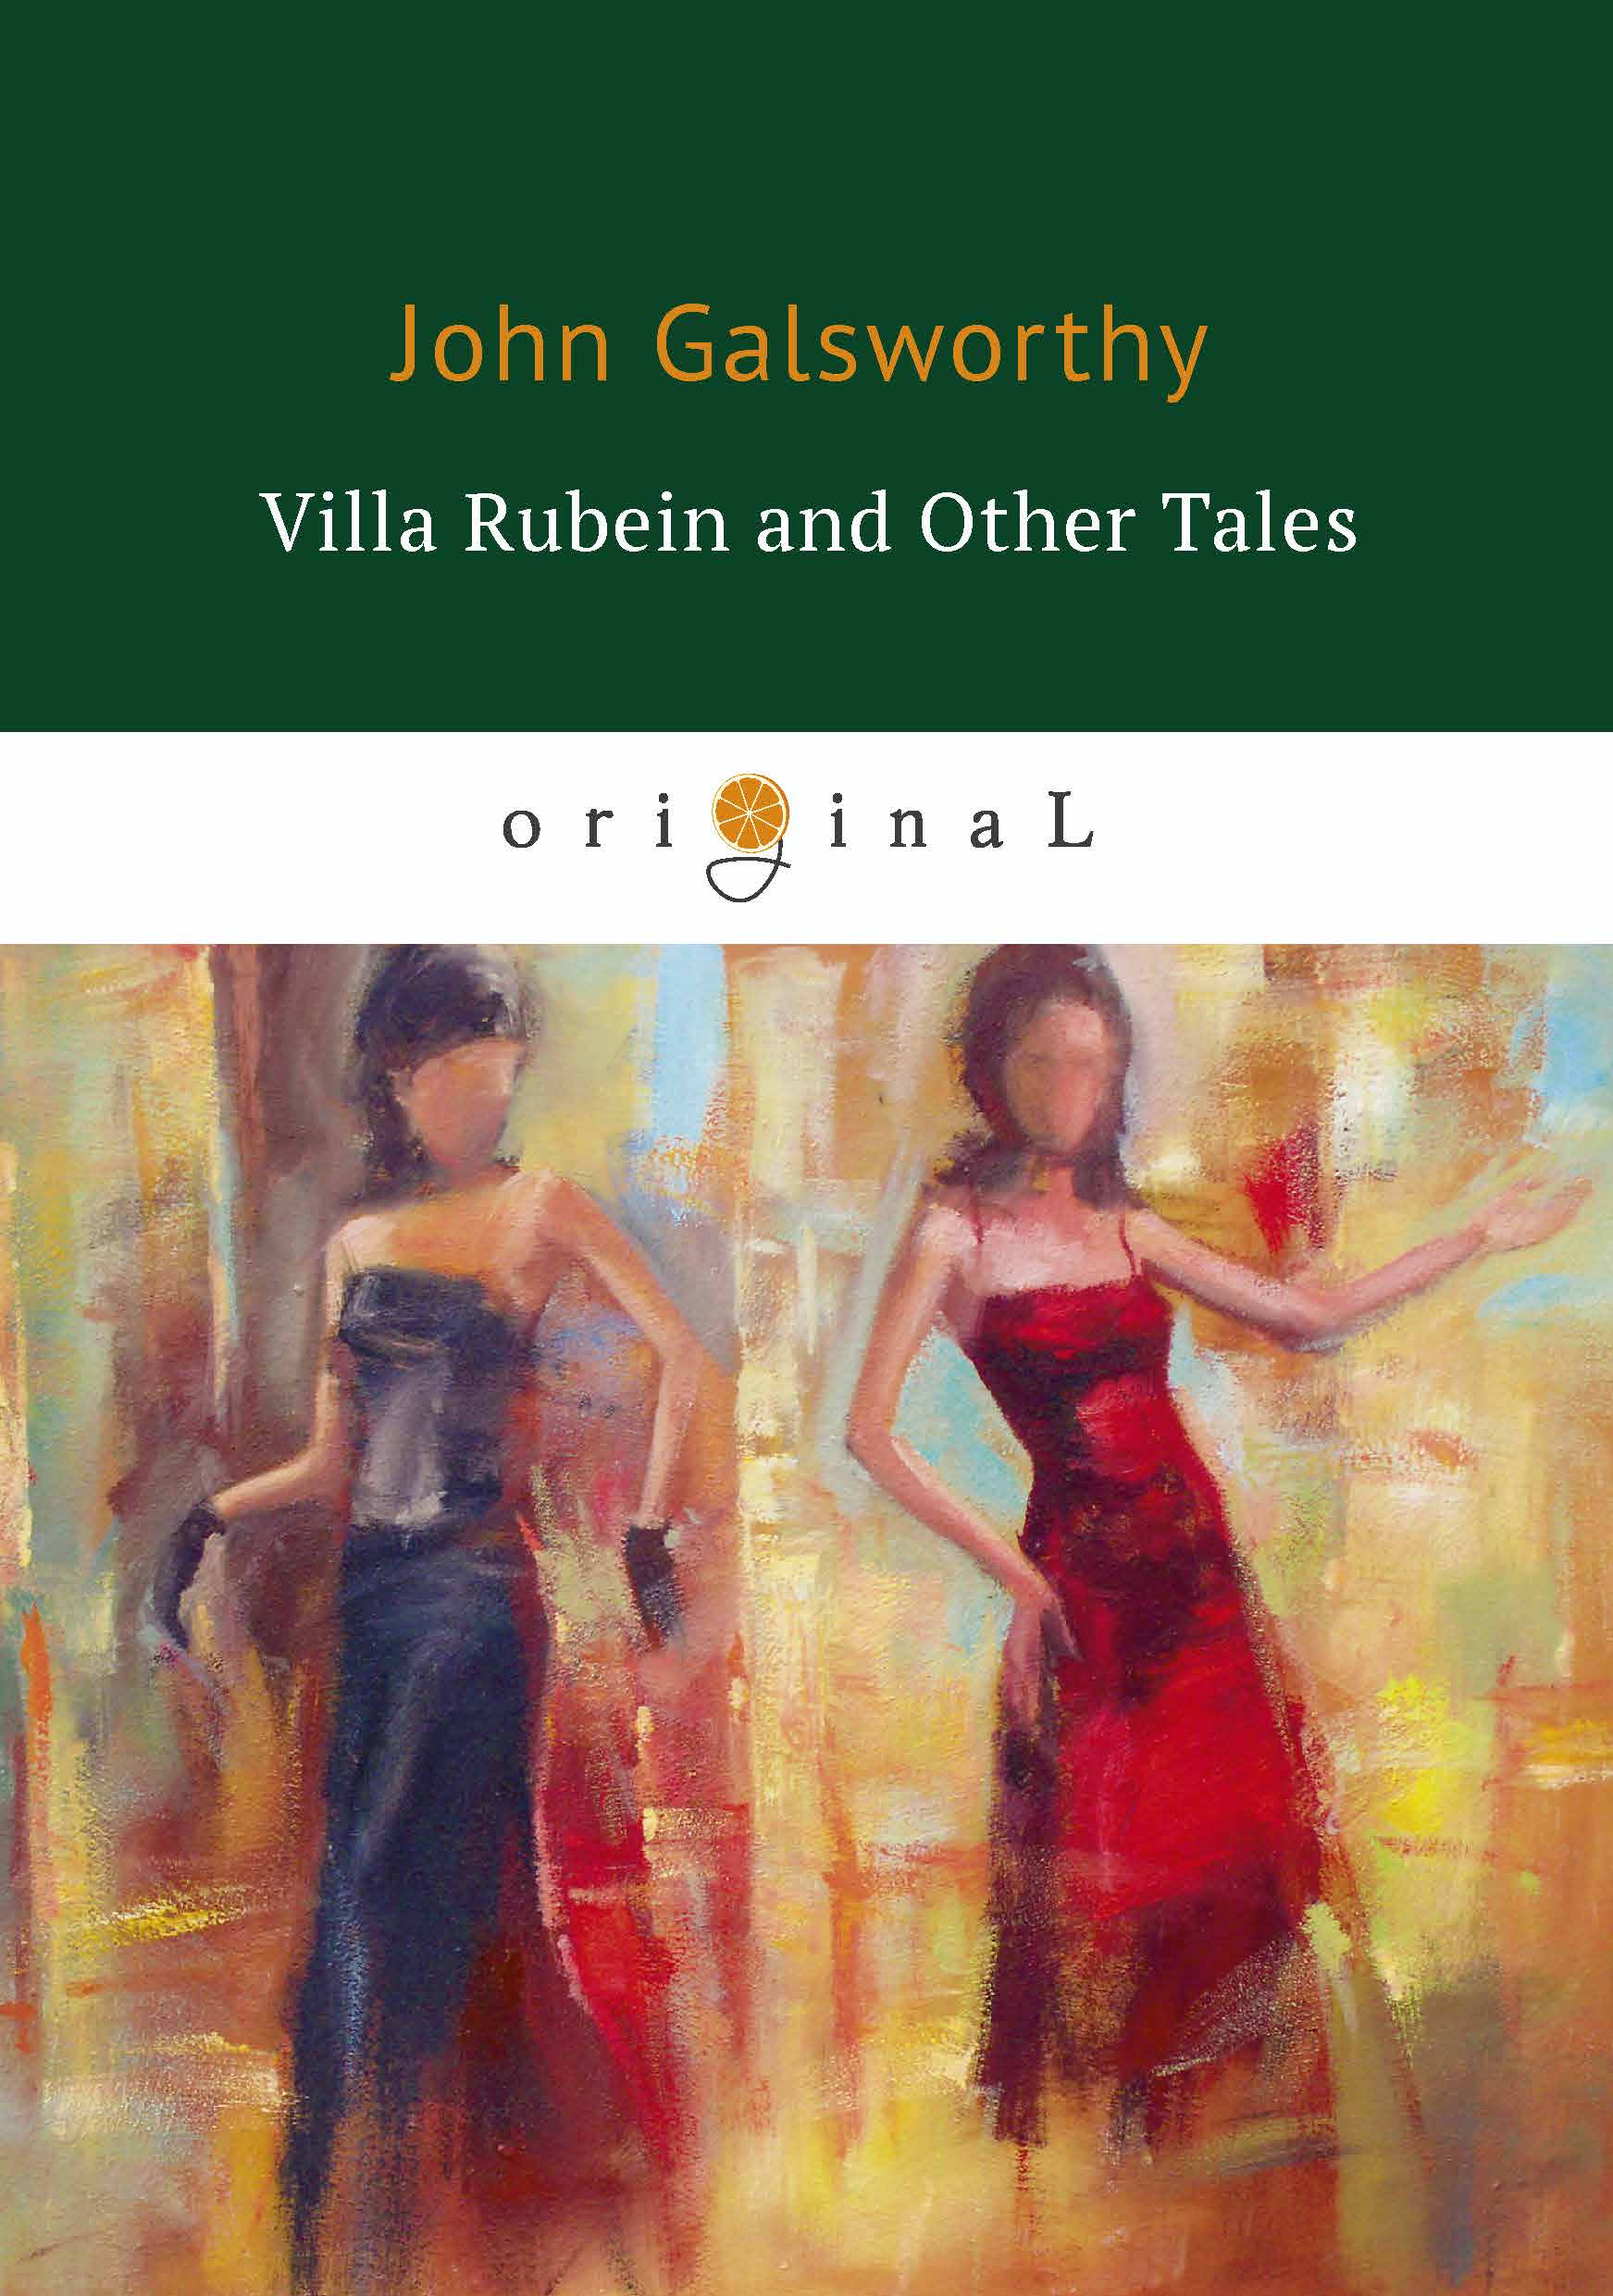 John Galsworthy Villa Rubein and Other Tales golsworthy john villa rubein and other tales